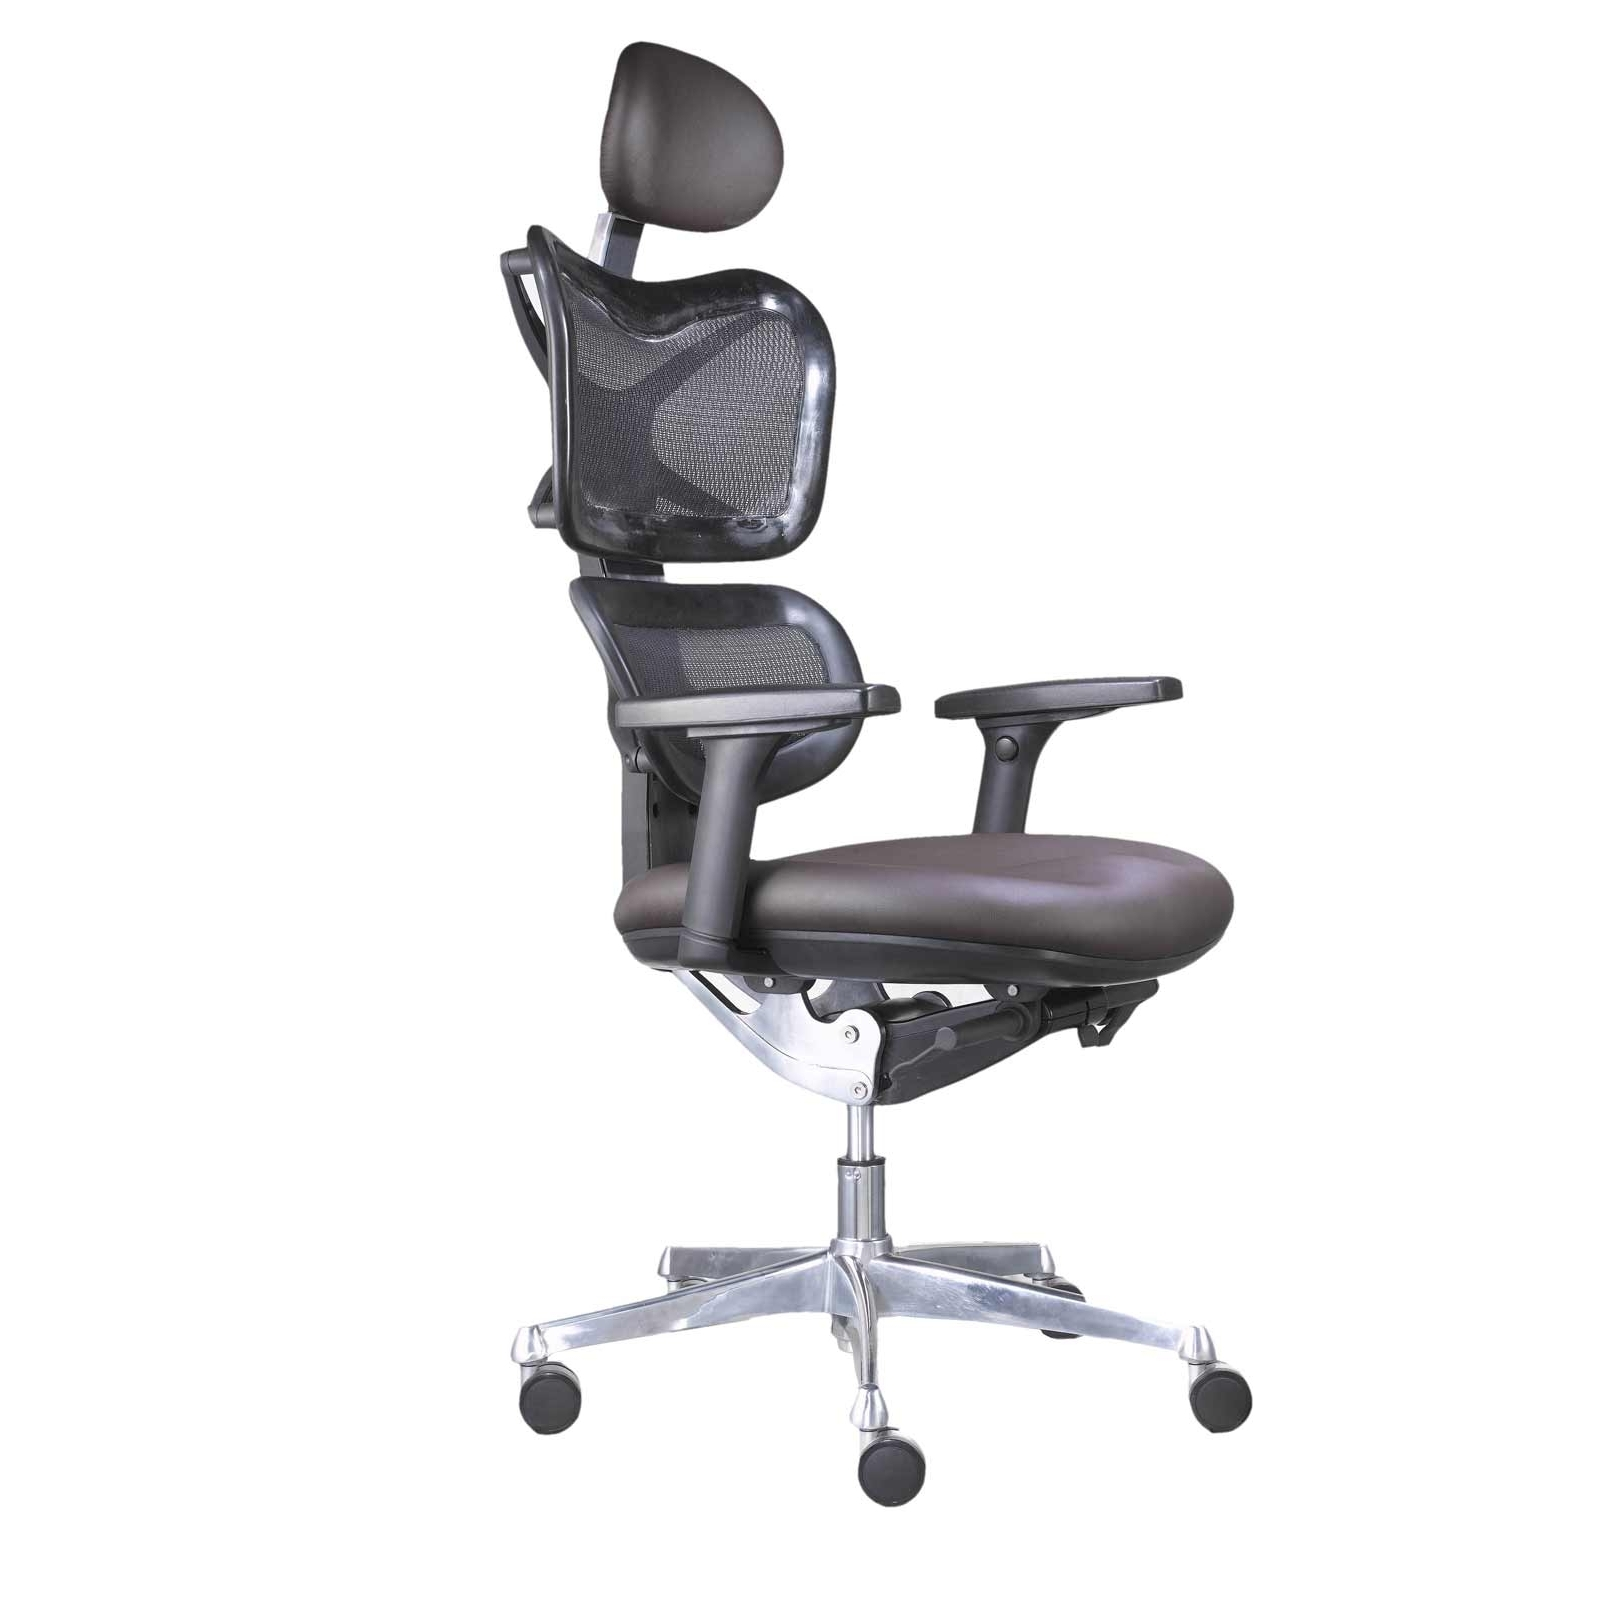 Executive Office Chairs With Headrest In Well Known High Back Mesh Office Chair With Headrest • Office Chairs (Gallery 12 of 20)